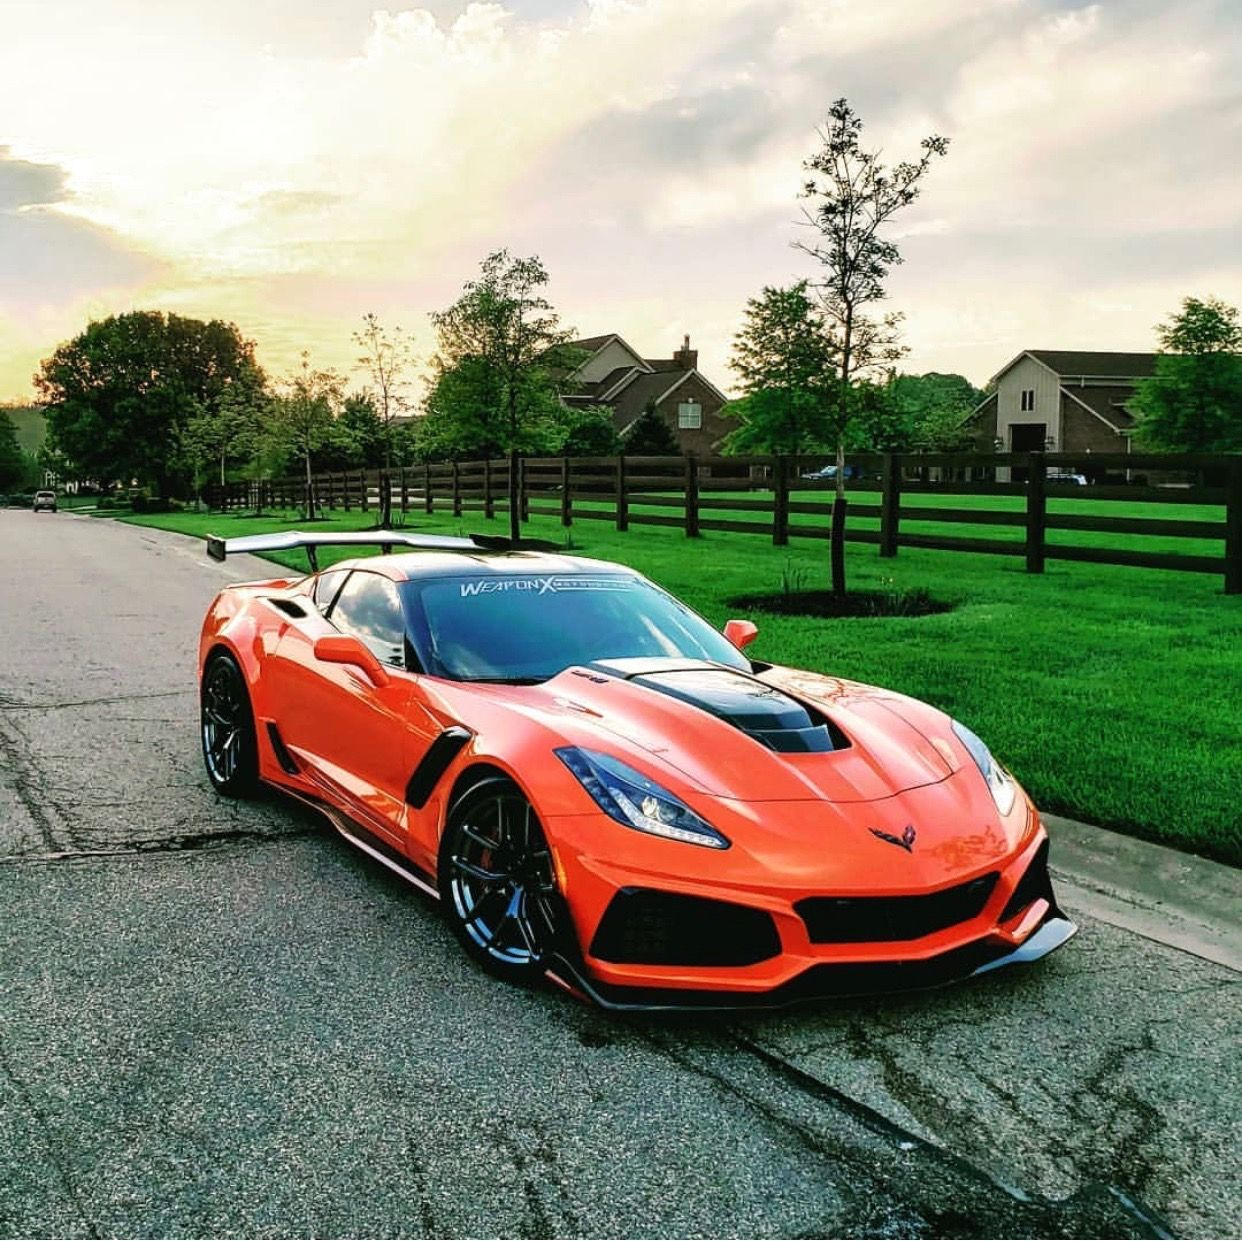 Chevrolet Corvette C7 Zr1 Painted In Sebring Orange W A Set Of